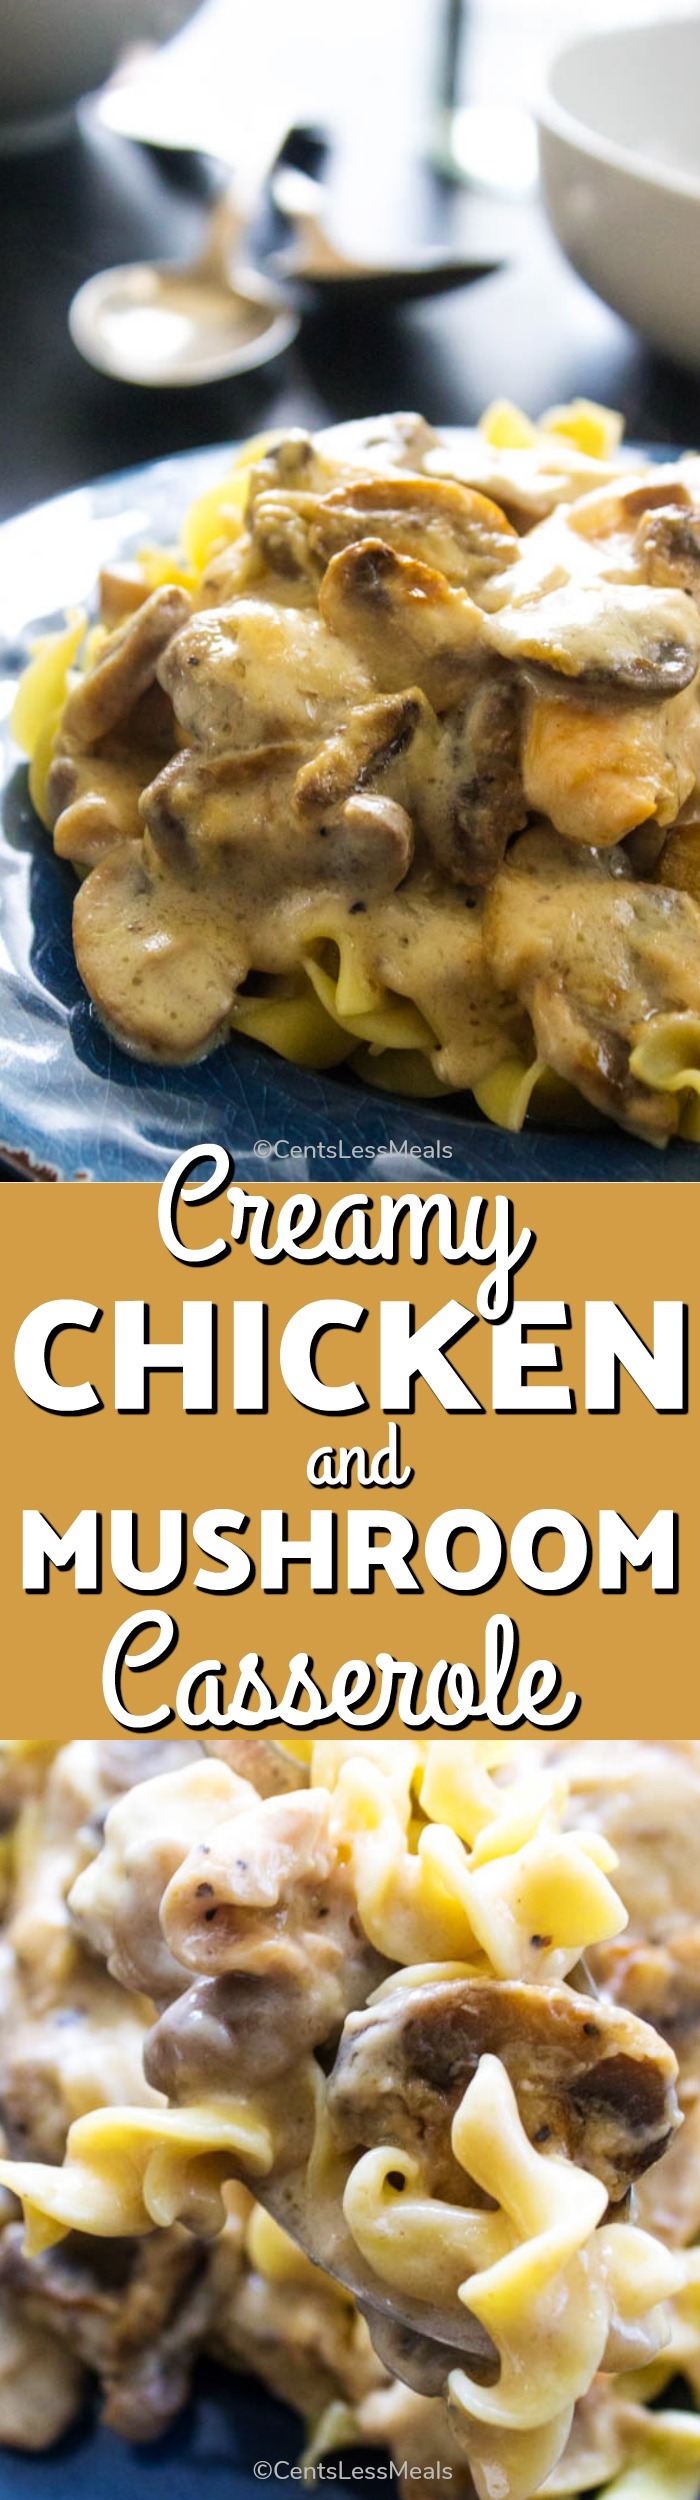 This Creamy Chicken and Mushroom Casserole is an easy weeknight dinner. It is saucy, creamy and full of chicken and mushrooms - a meal the entire family will love. #EasyRecipe #Casserole #CreamyCasserole #Chicken #Homemade #WeeknightMeal